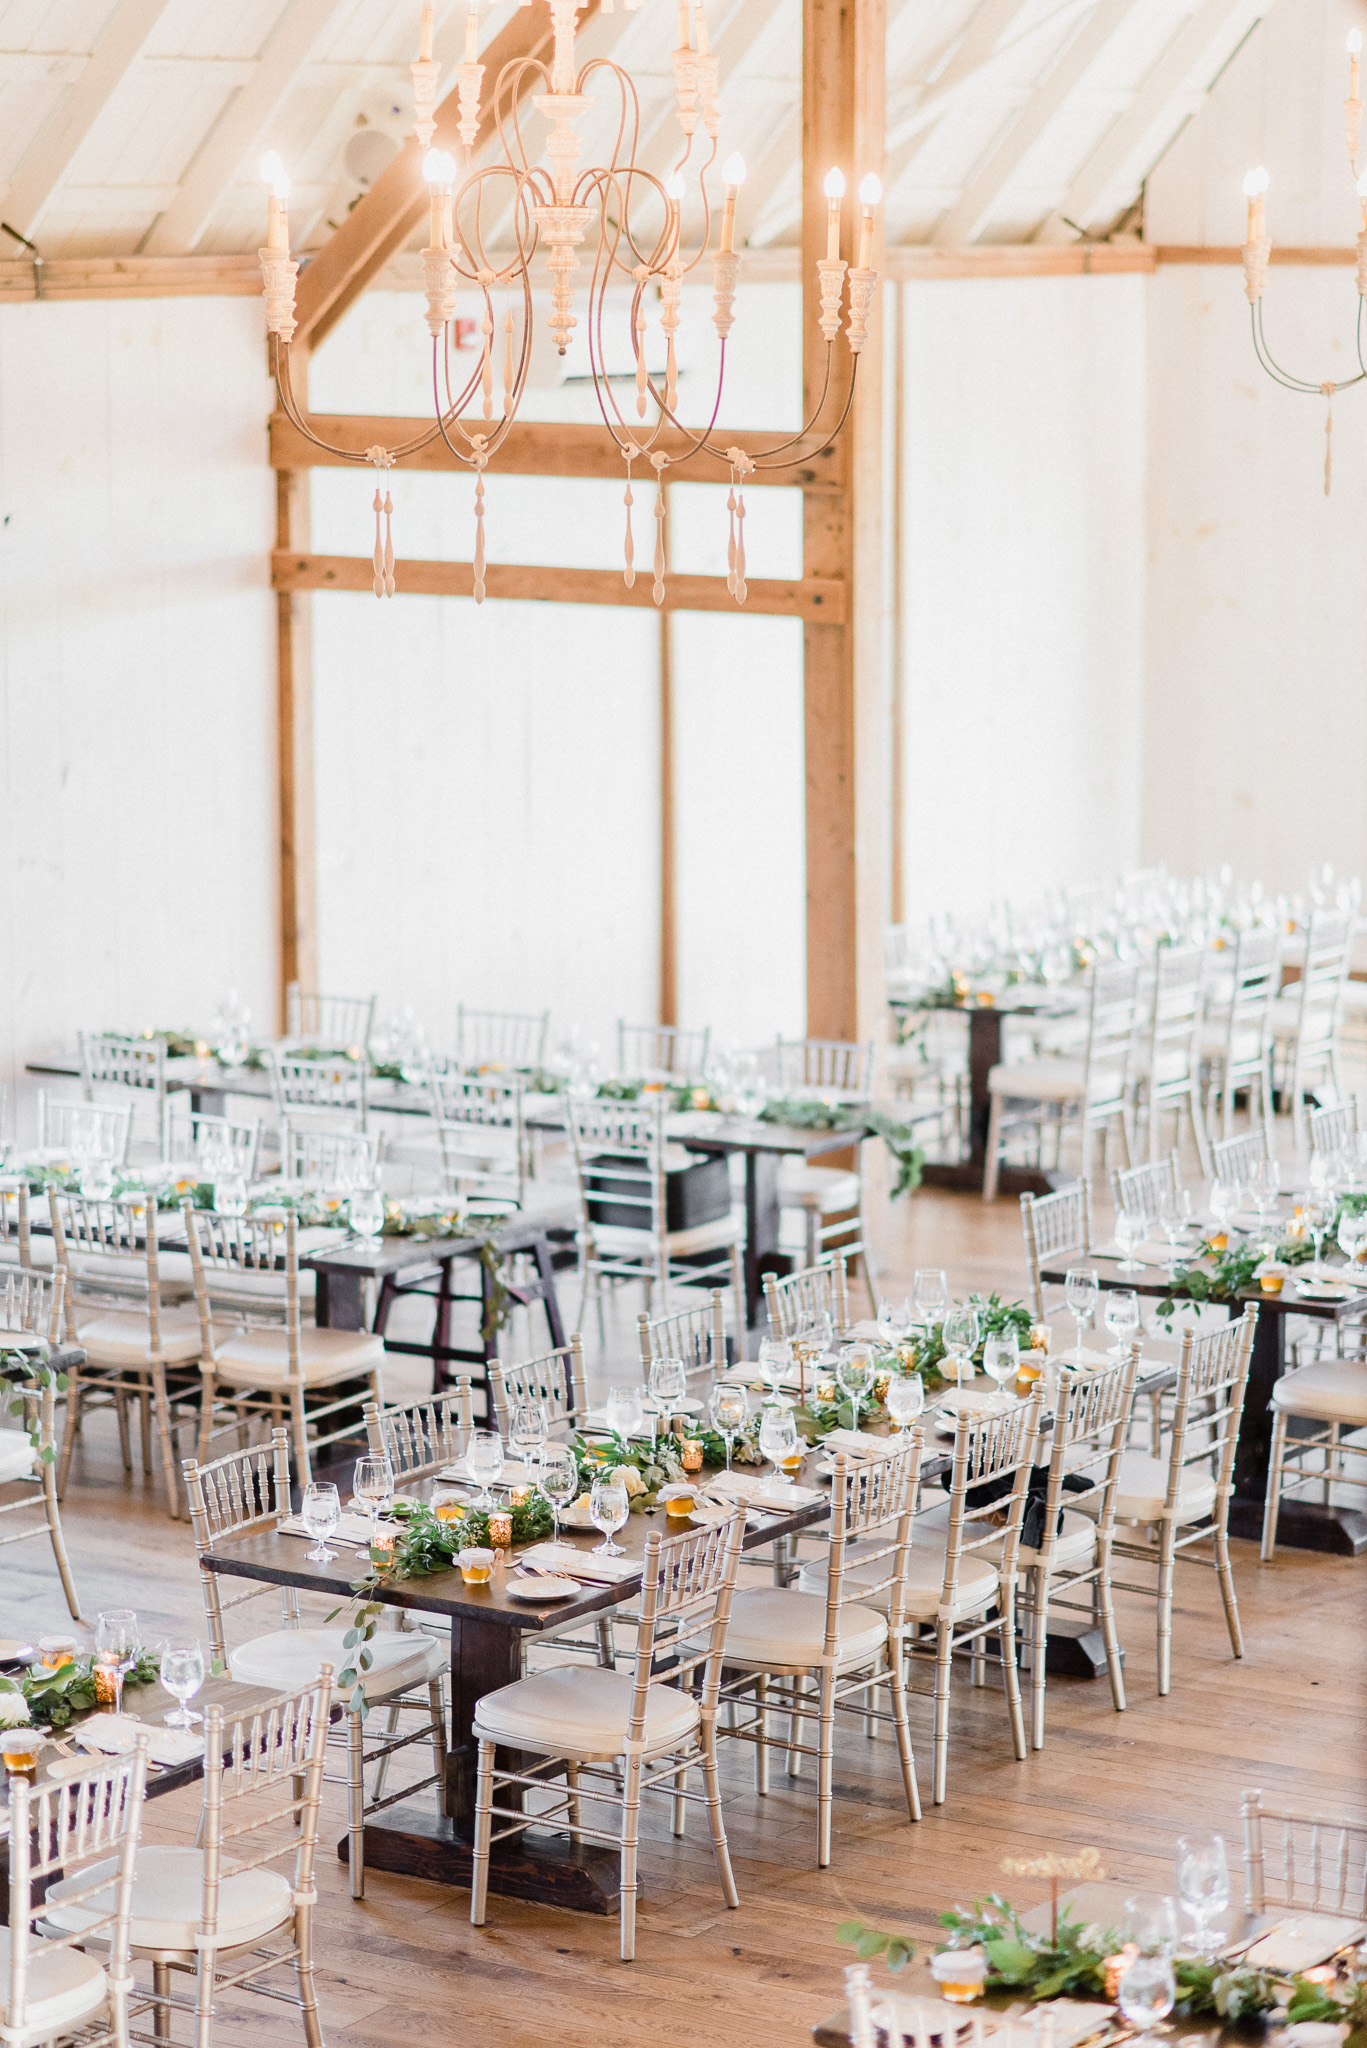 Harvest table wedding setup at Earth to Table Farm by Jenn Kavanagh Photography